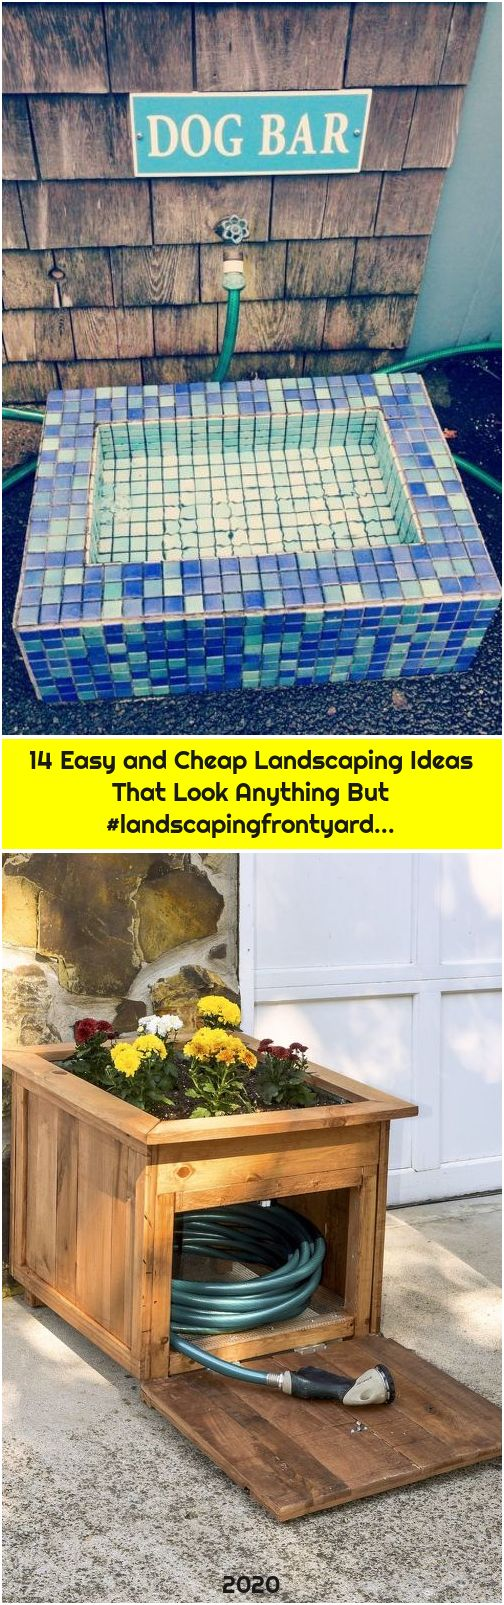 14 Easy and Cheap Landscaping Ideas That Look Anything But #landscapingfrontyard...